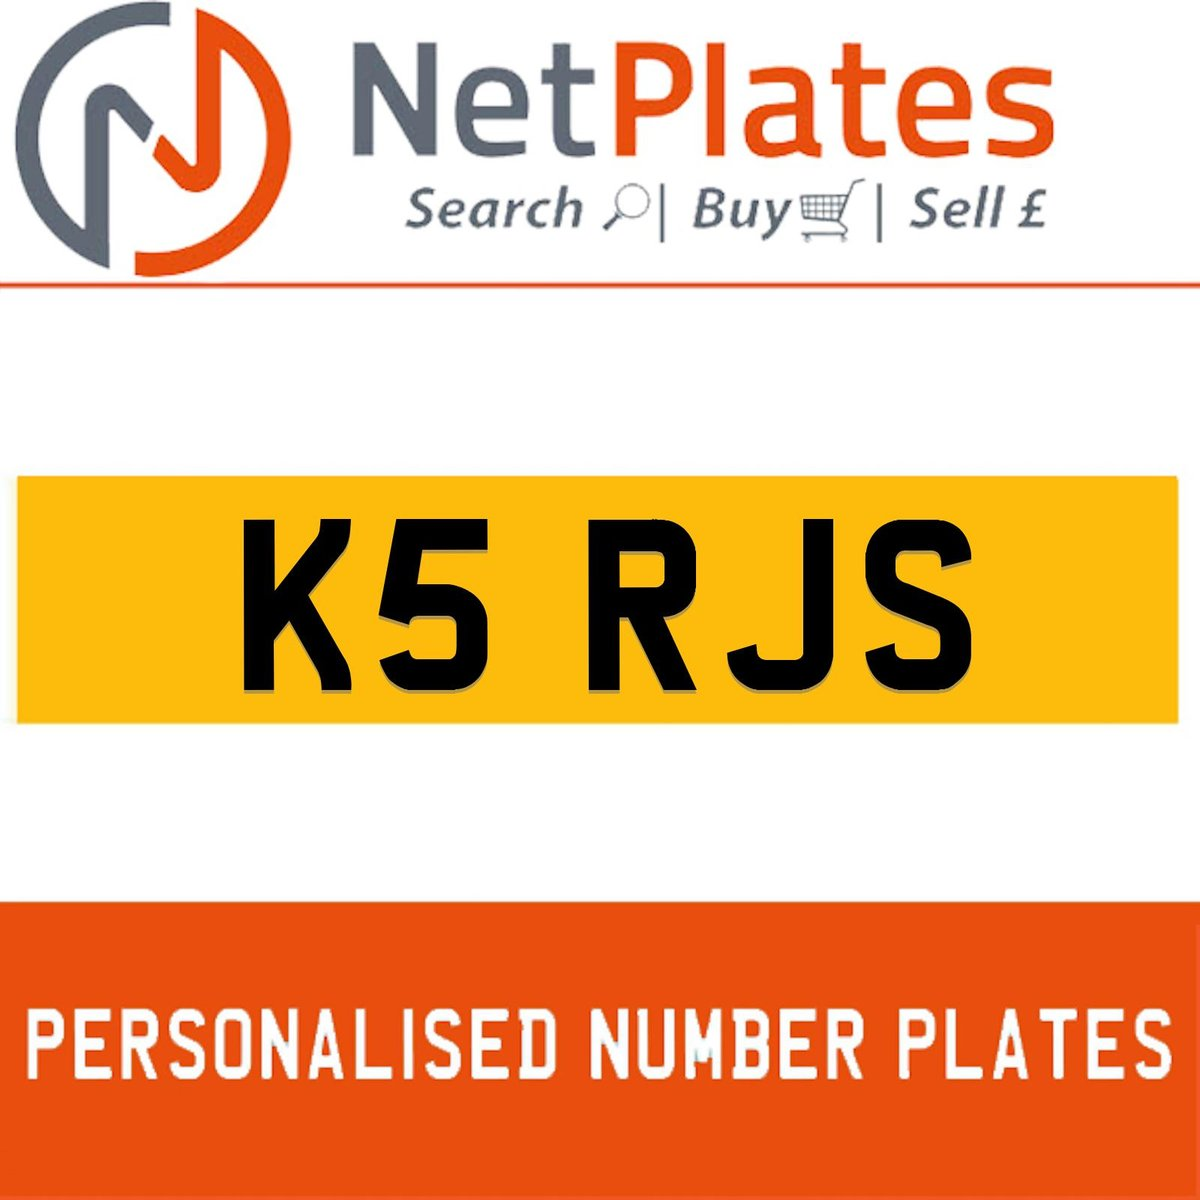 K5 RJS PERSONALISED PRIVATE CHERISHED DVLA NUMBER PLATE For Sale (picture 1 of 5)